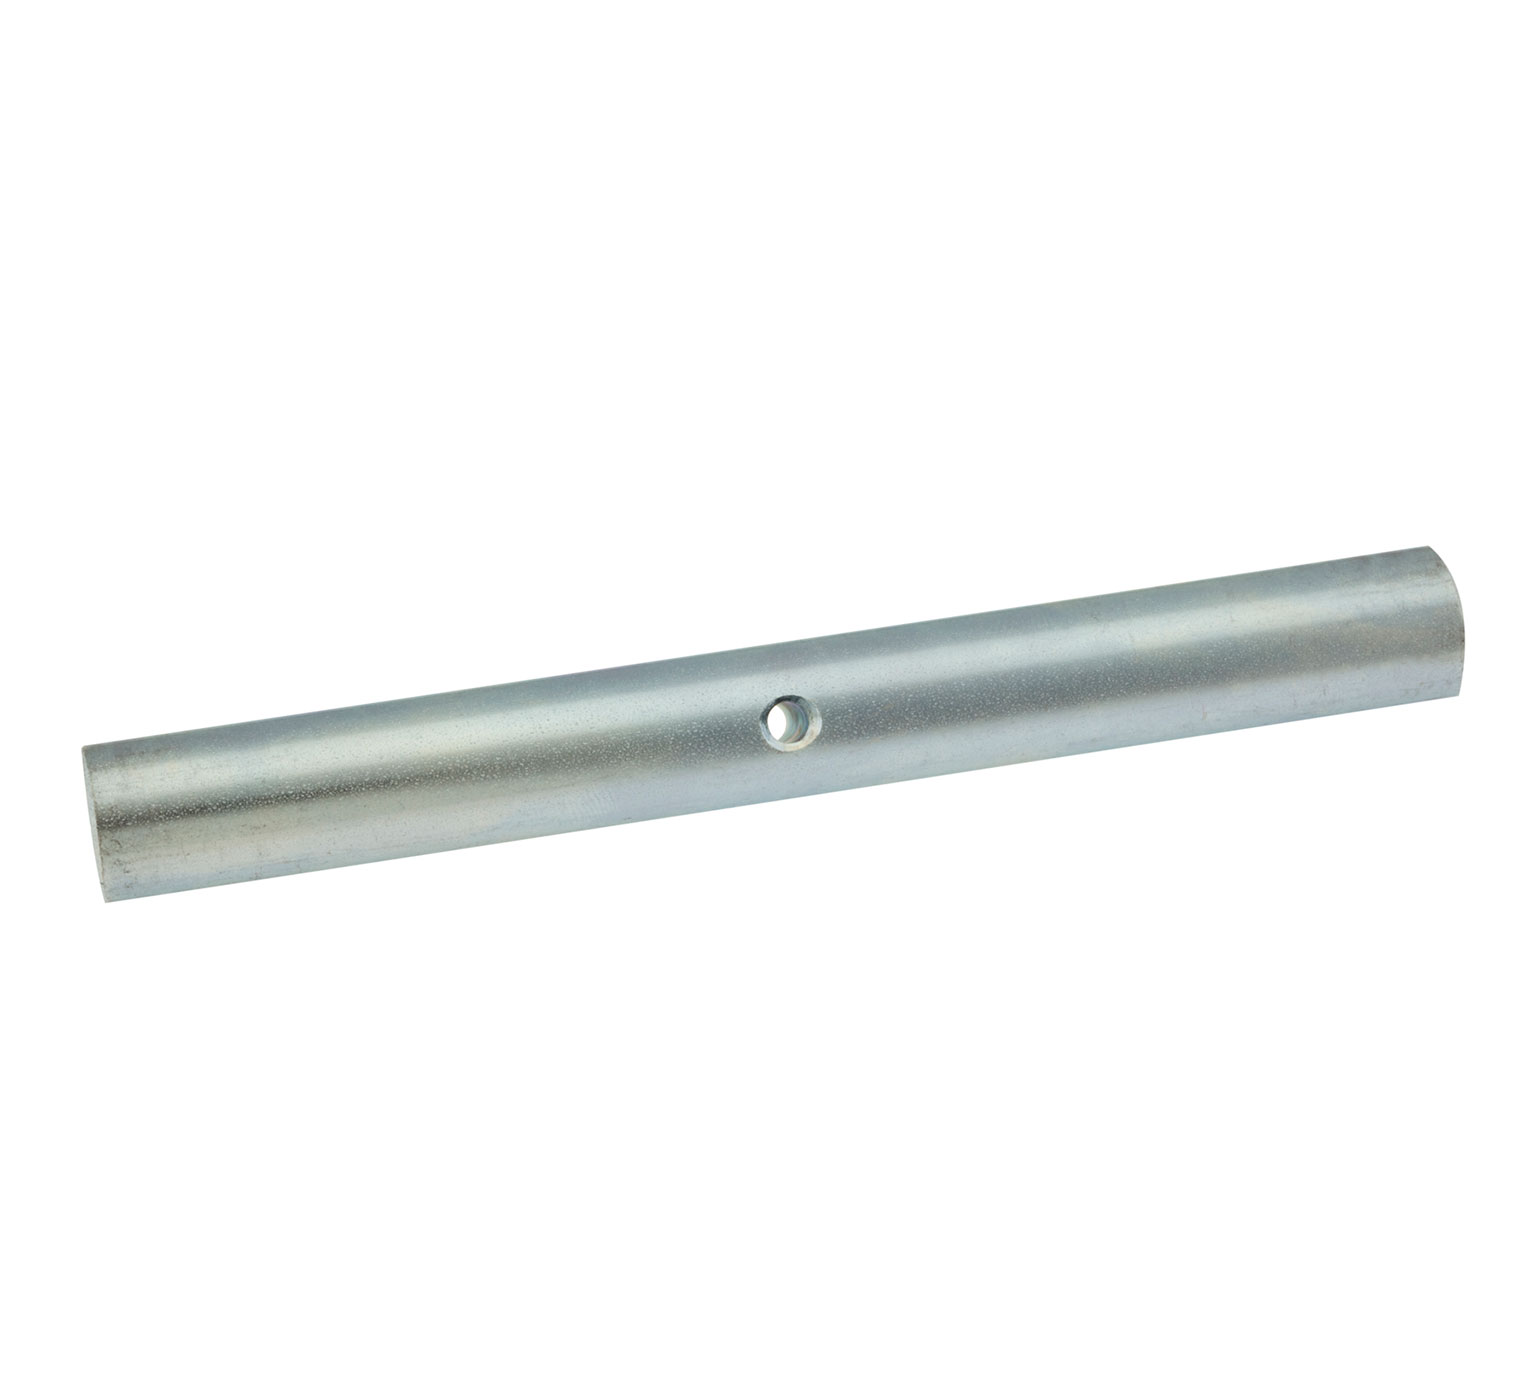 222239 Steel Pin - 0.625 x 5.4 in alt 1